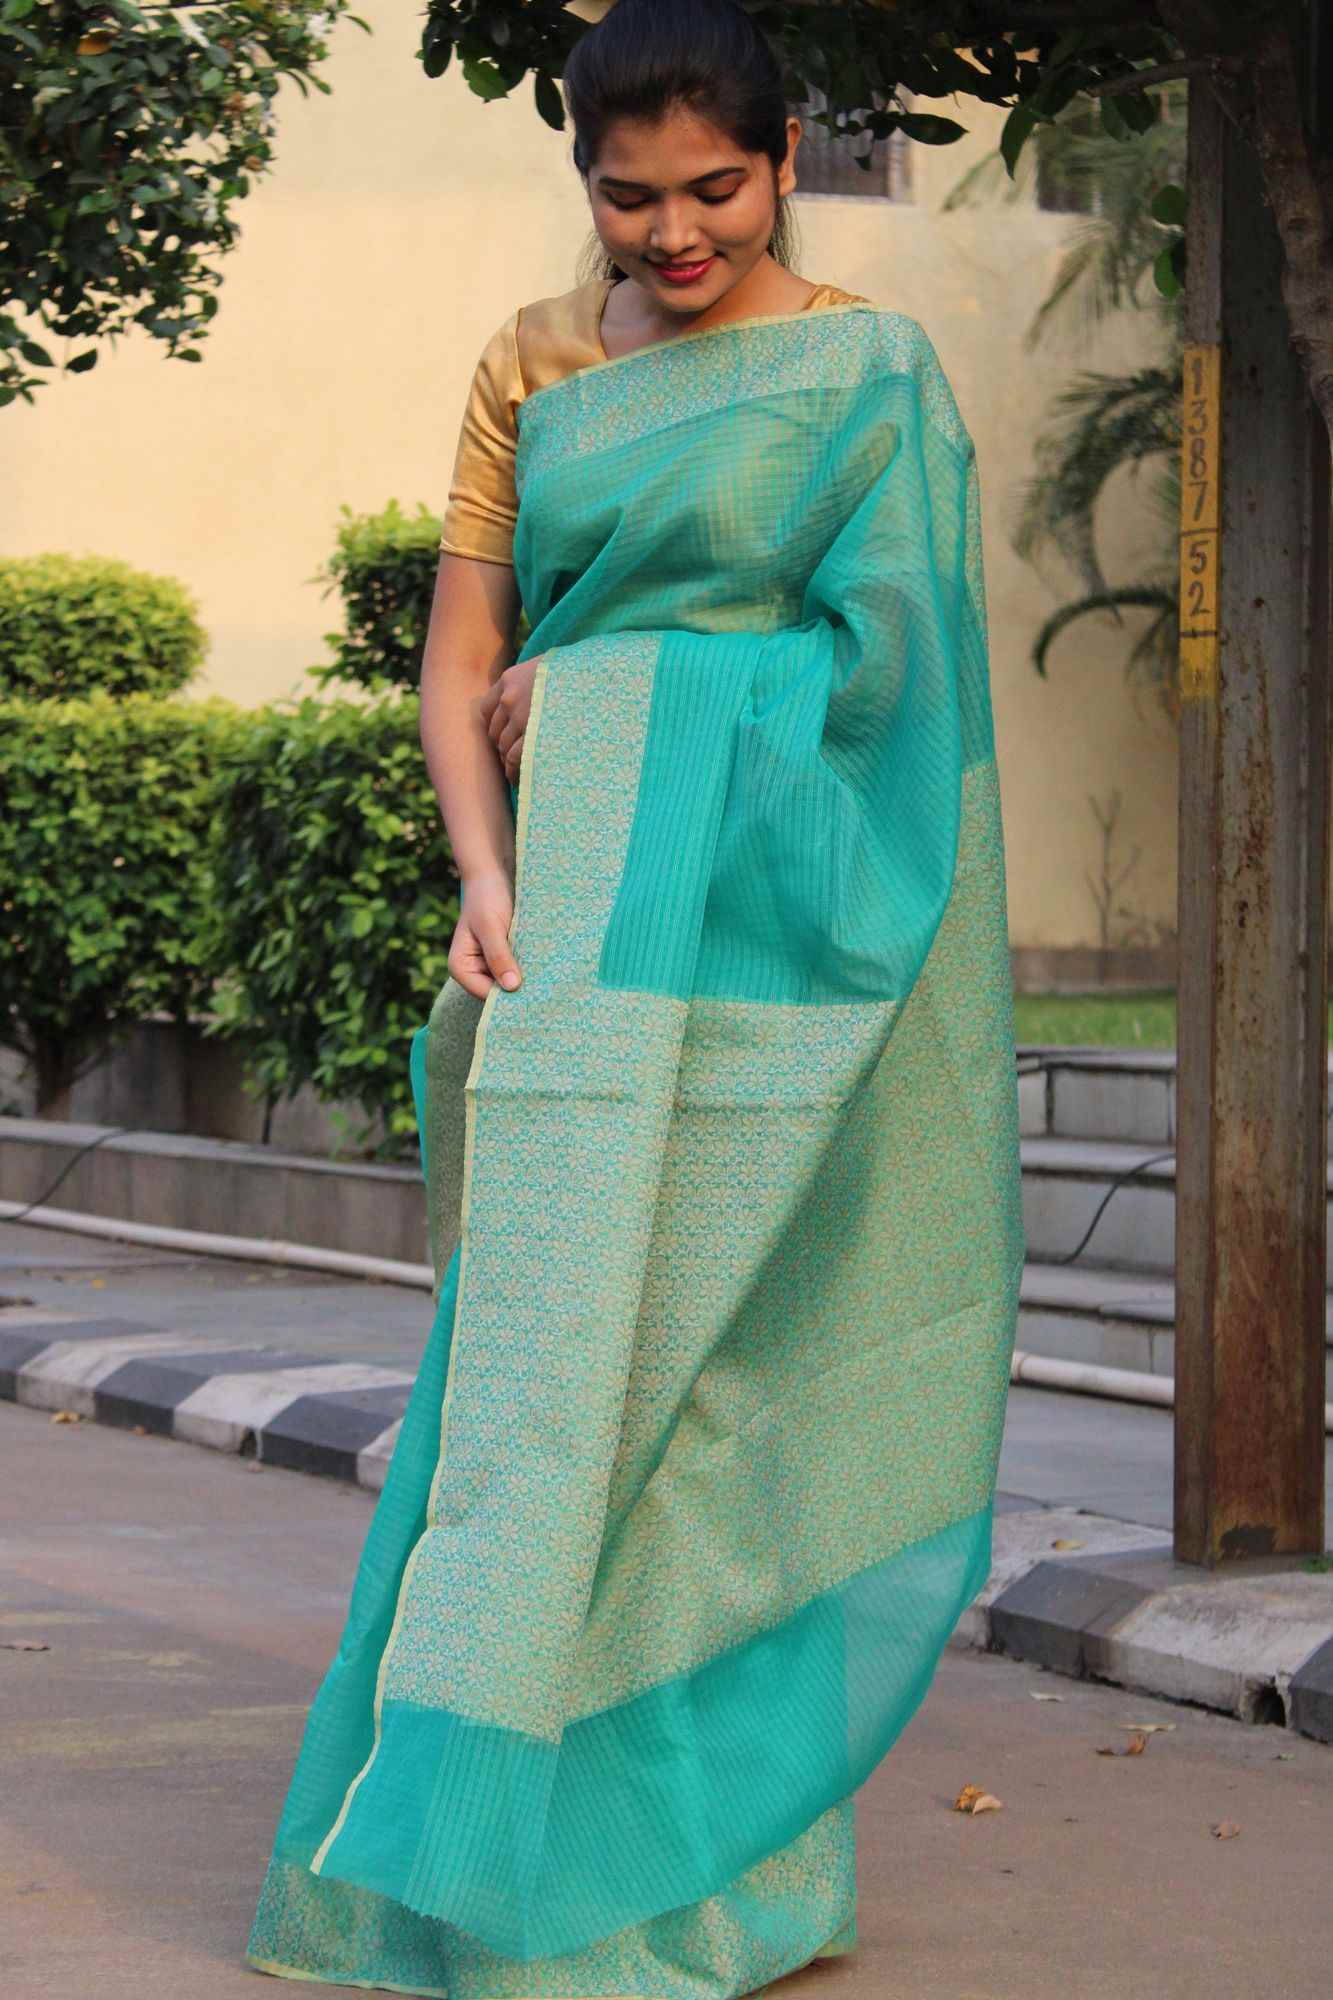 Banarasi woven resham brocade border and pallu sea green wrap in 1 minute saree